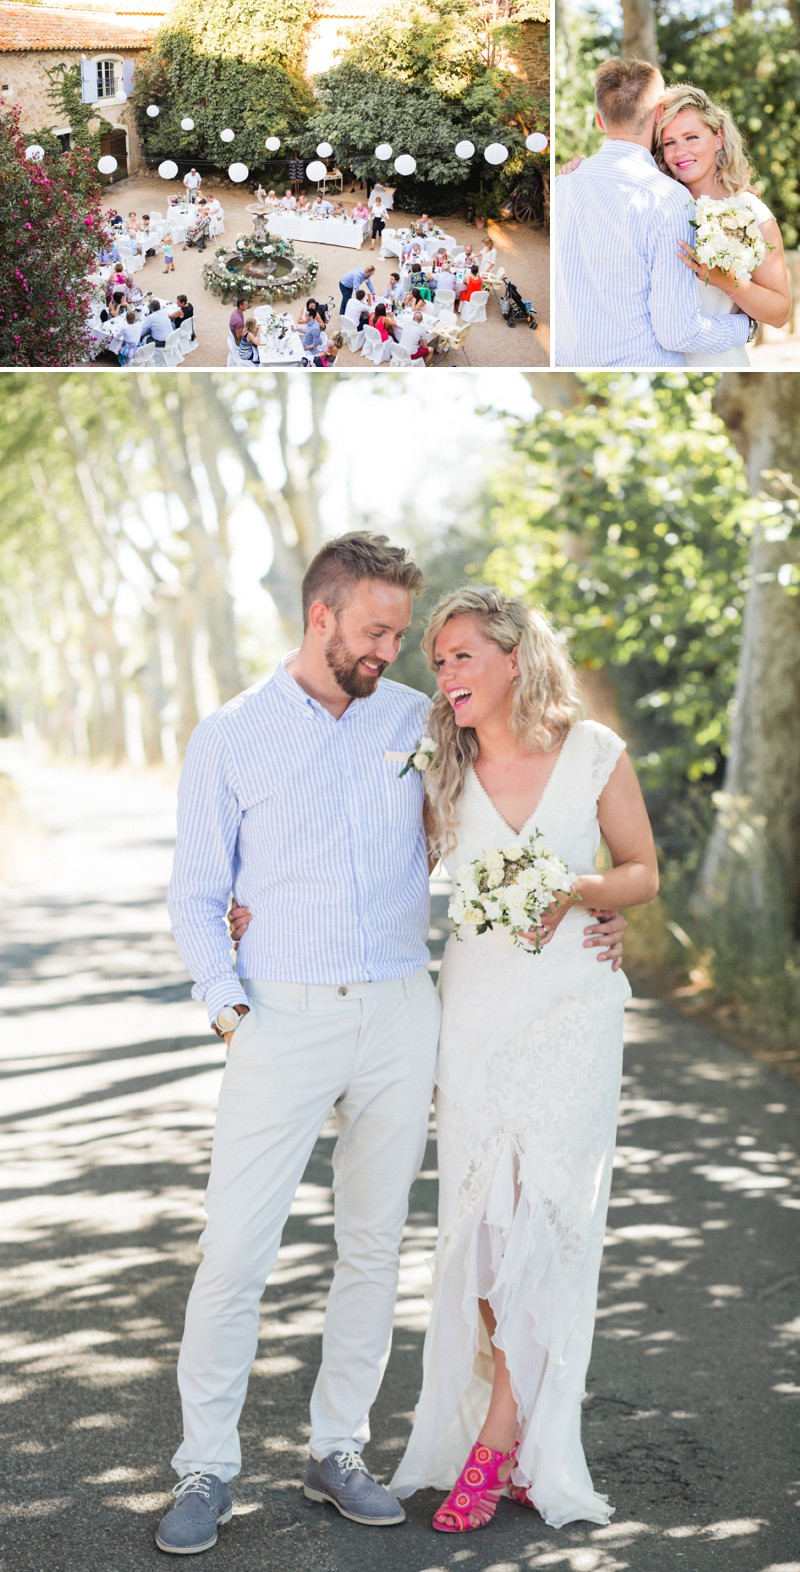 A Beautiful Destination Wedding at Chateau du Puits es Pratx in France With A Handmade Bohemian Wedding Dress And White Colour Scheme By M&J Photography._0006